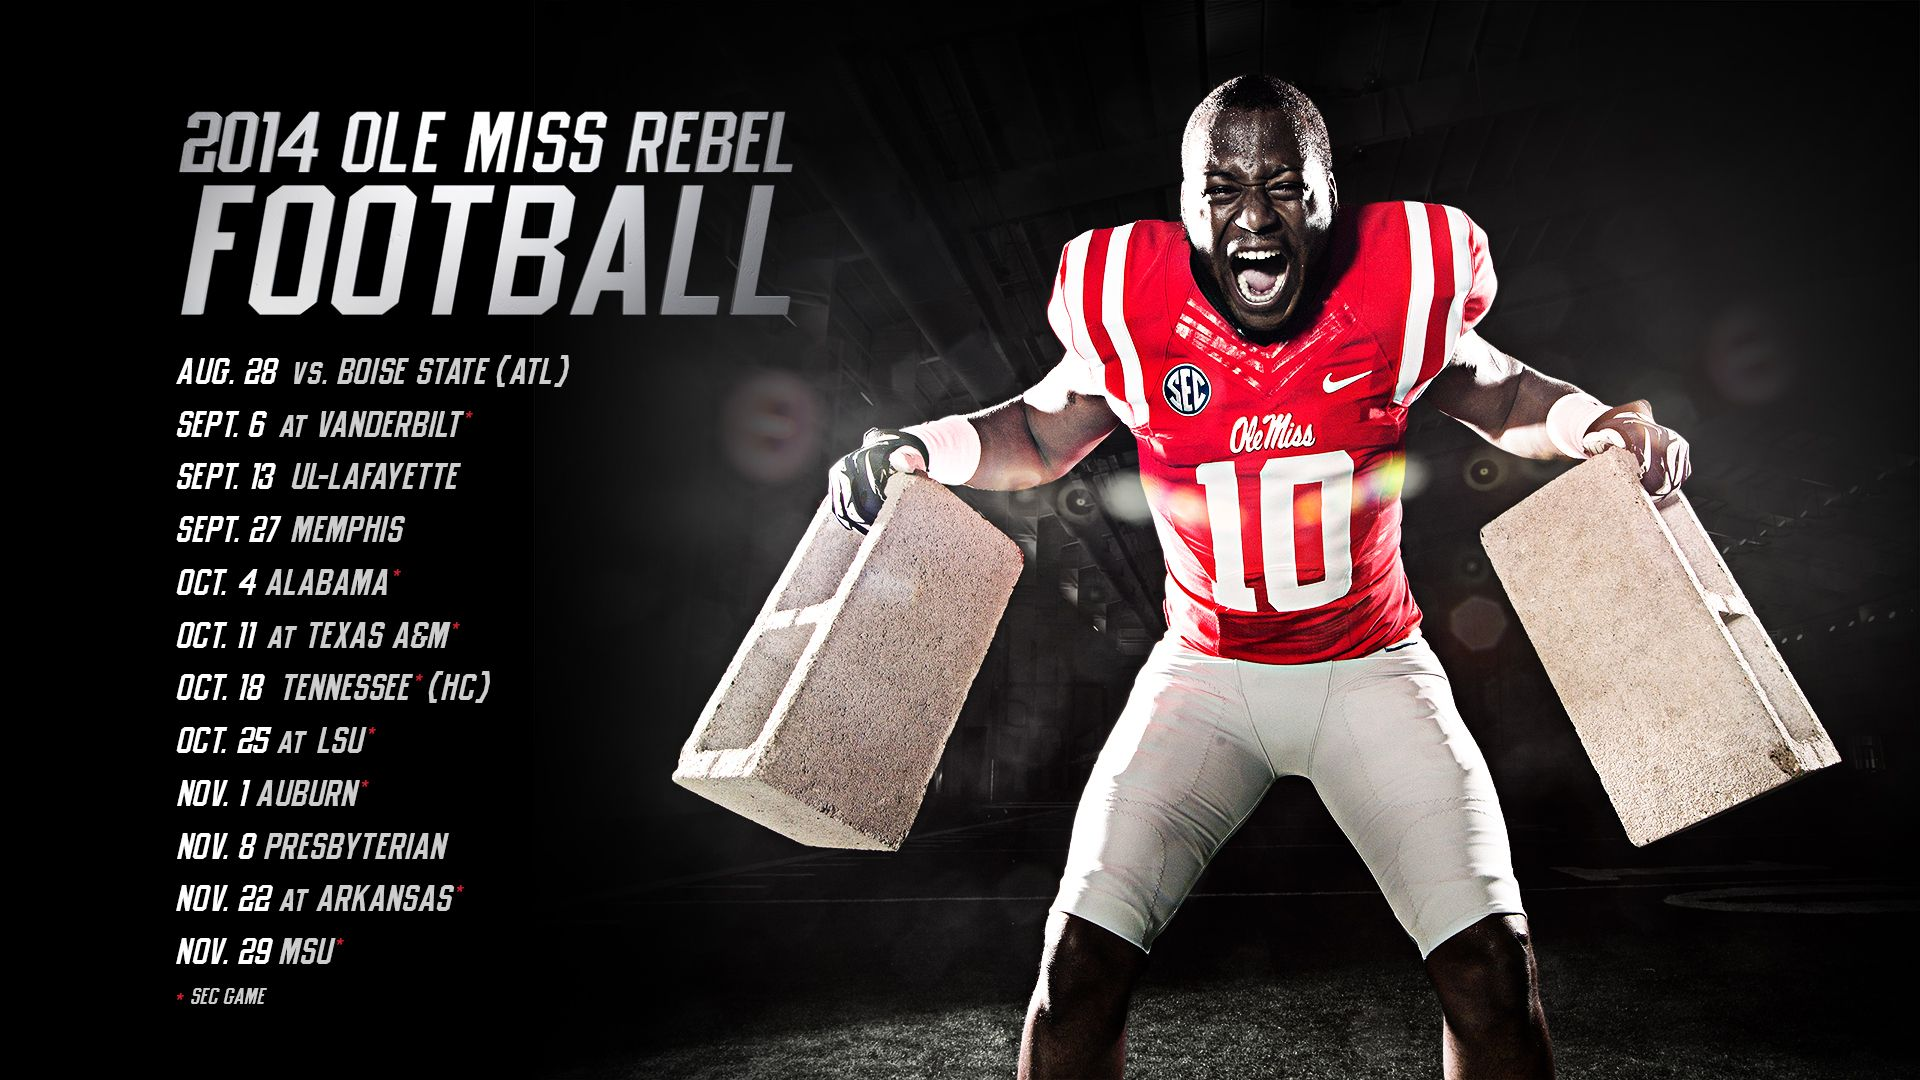 Ole Miss Wallpapers Browser Themes More For Rebels Fans Ole Miss Football Ole Miss Ole Miss Rebels Football